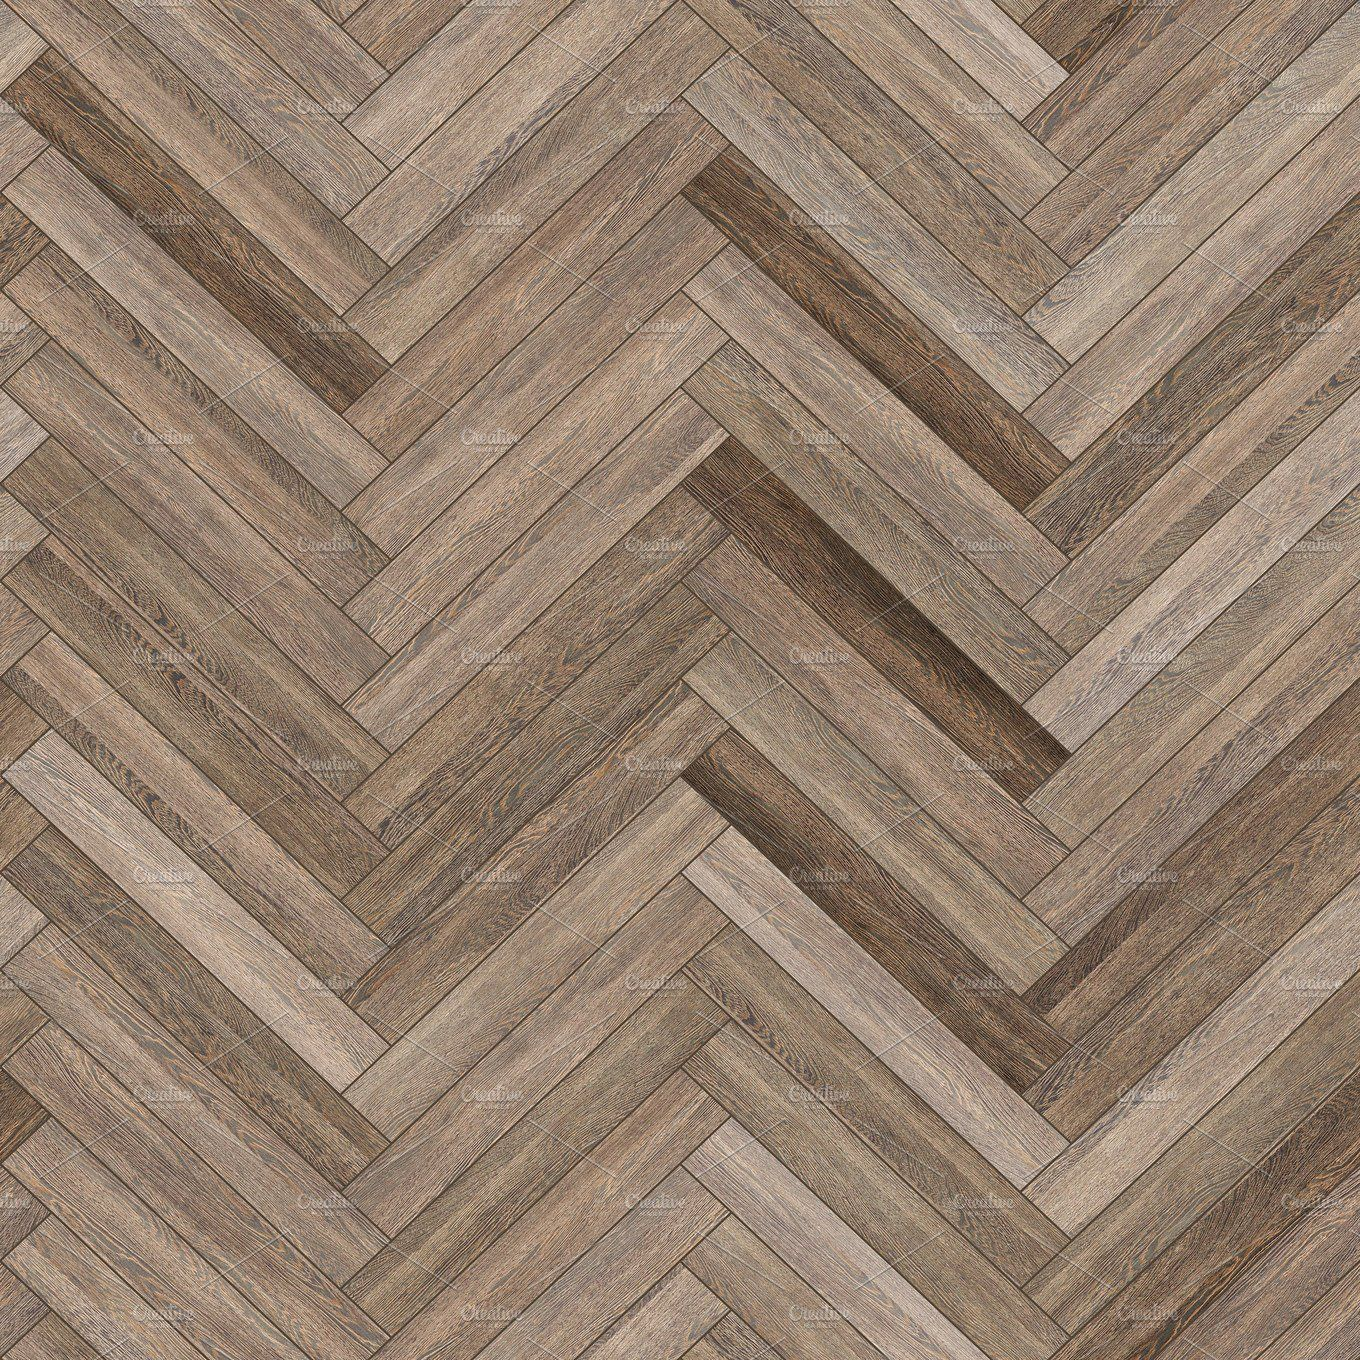 Seamless wood parquet texture (herringbone neutral) by Vdr0id on @creativemarket #woodtextureseamless